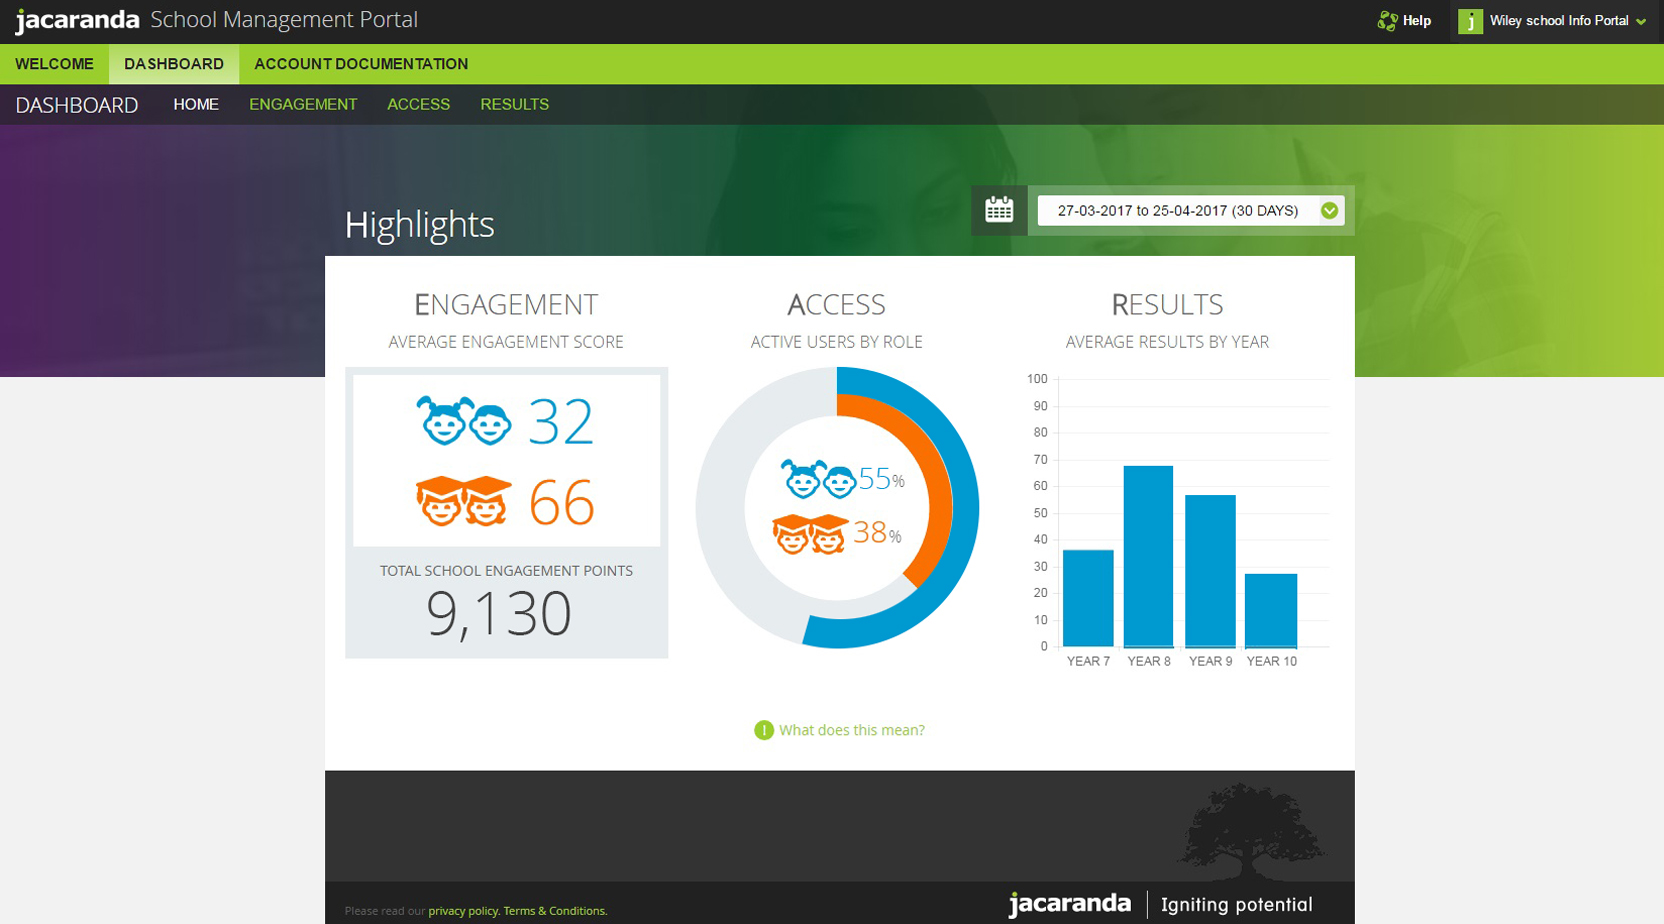 Dashboard-homeview